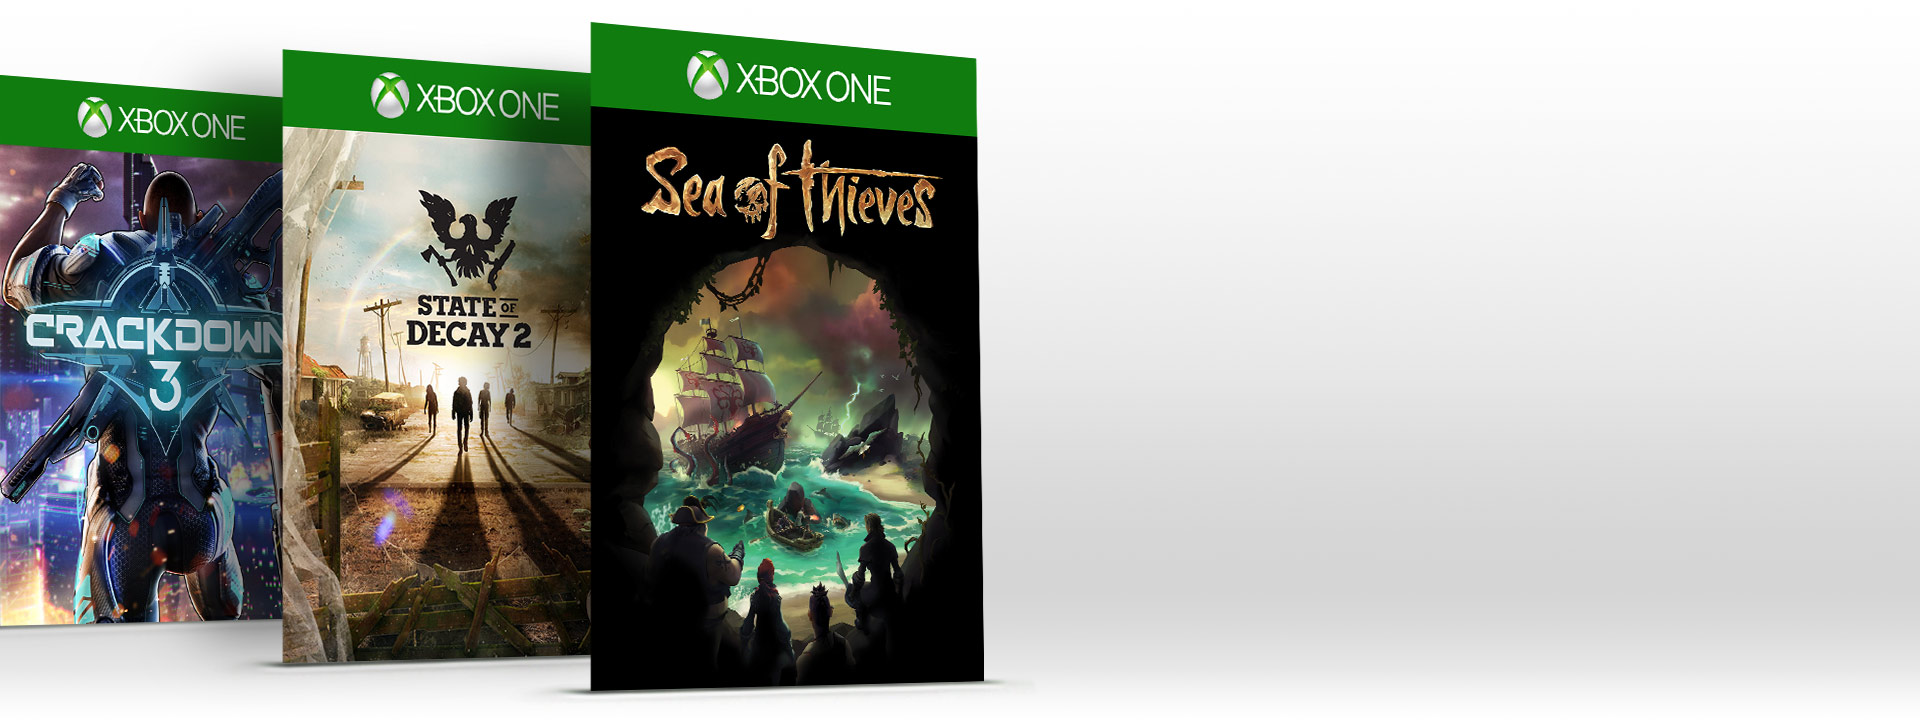 Três jogos sucessivos para Xbox: Sea of Thieves, State of Decay 2 e Crackdown 3